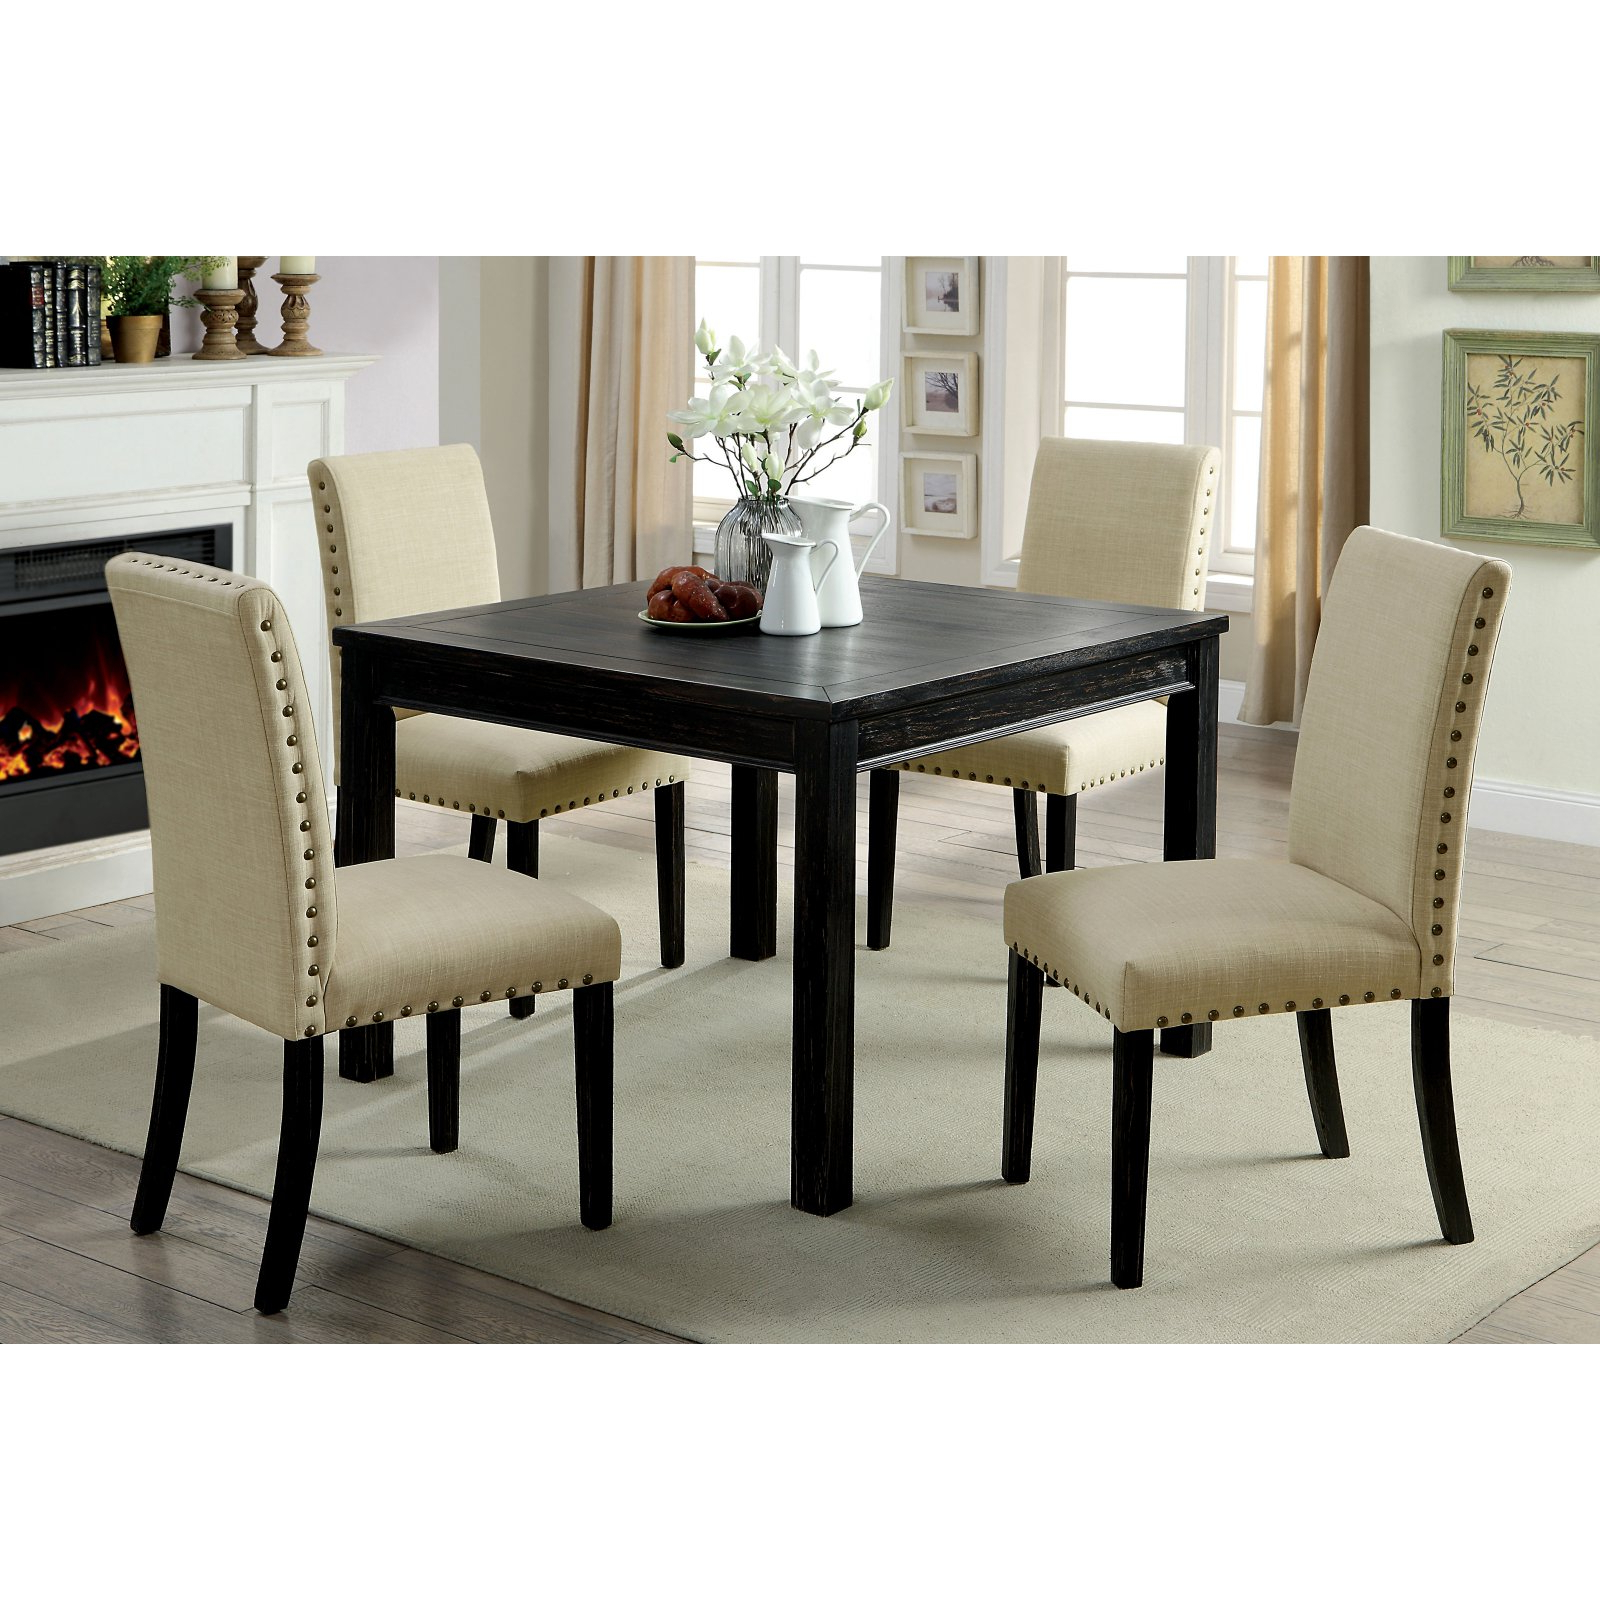 Favorite Ephraim 5 Piece Dining Sets Intended For Furniture Of America Verdugo 5 Piece Rustic Dining Table Set (View 18 of 25)